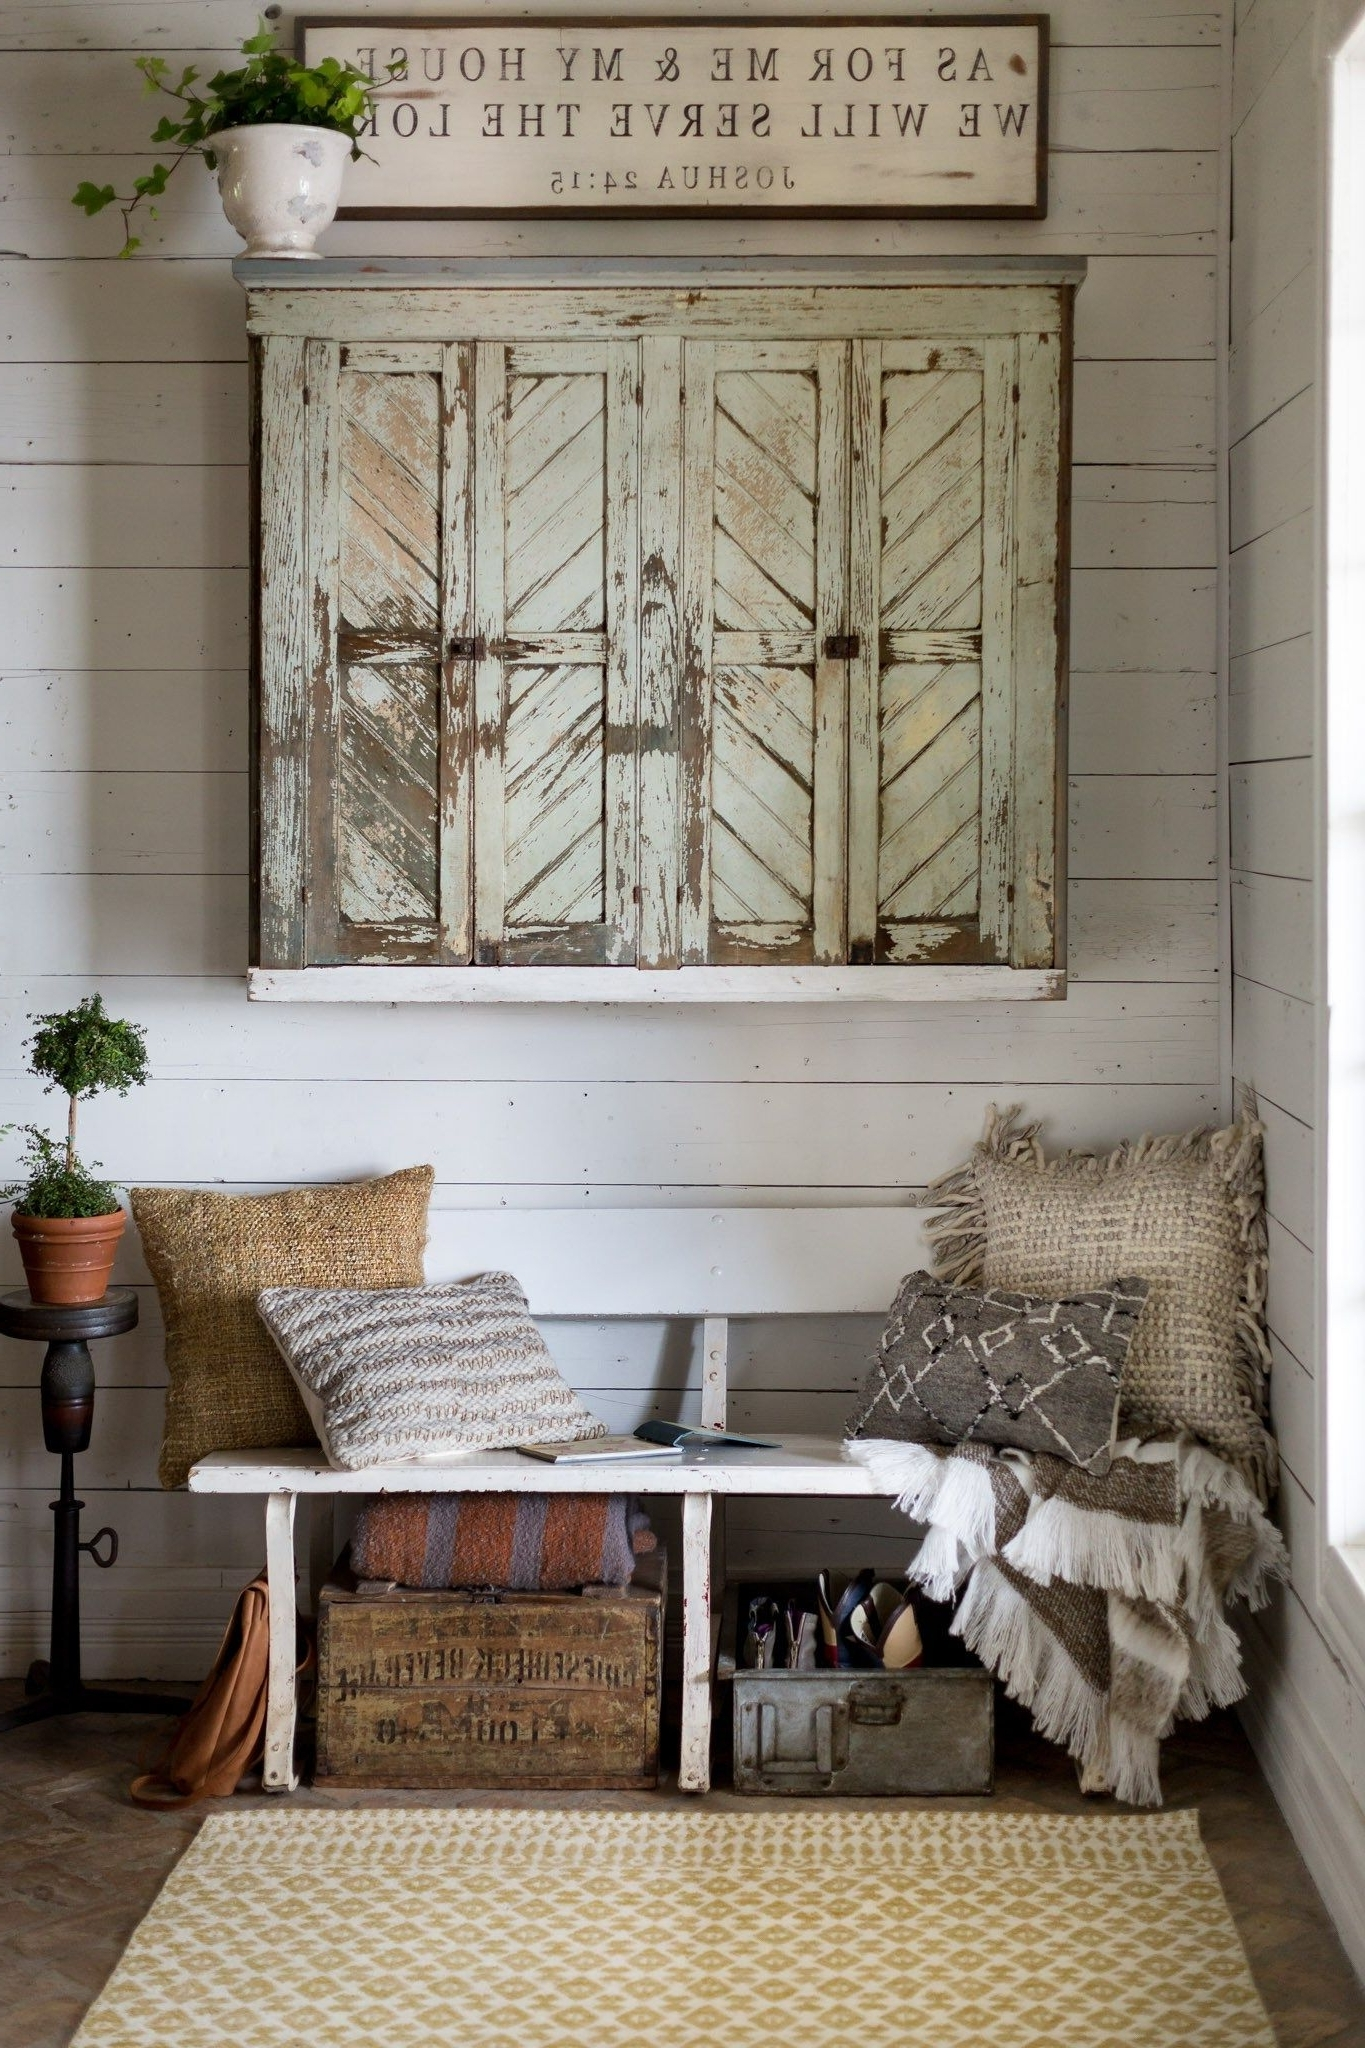 Magnolia Home Prairie Dining Tables With Regard To Most Up To Date Magnolia Home Rugsjoanna Gaines Are Now Available At Furniture (View 11 of 25)